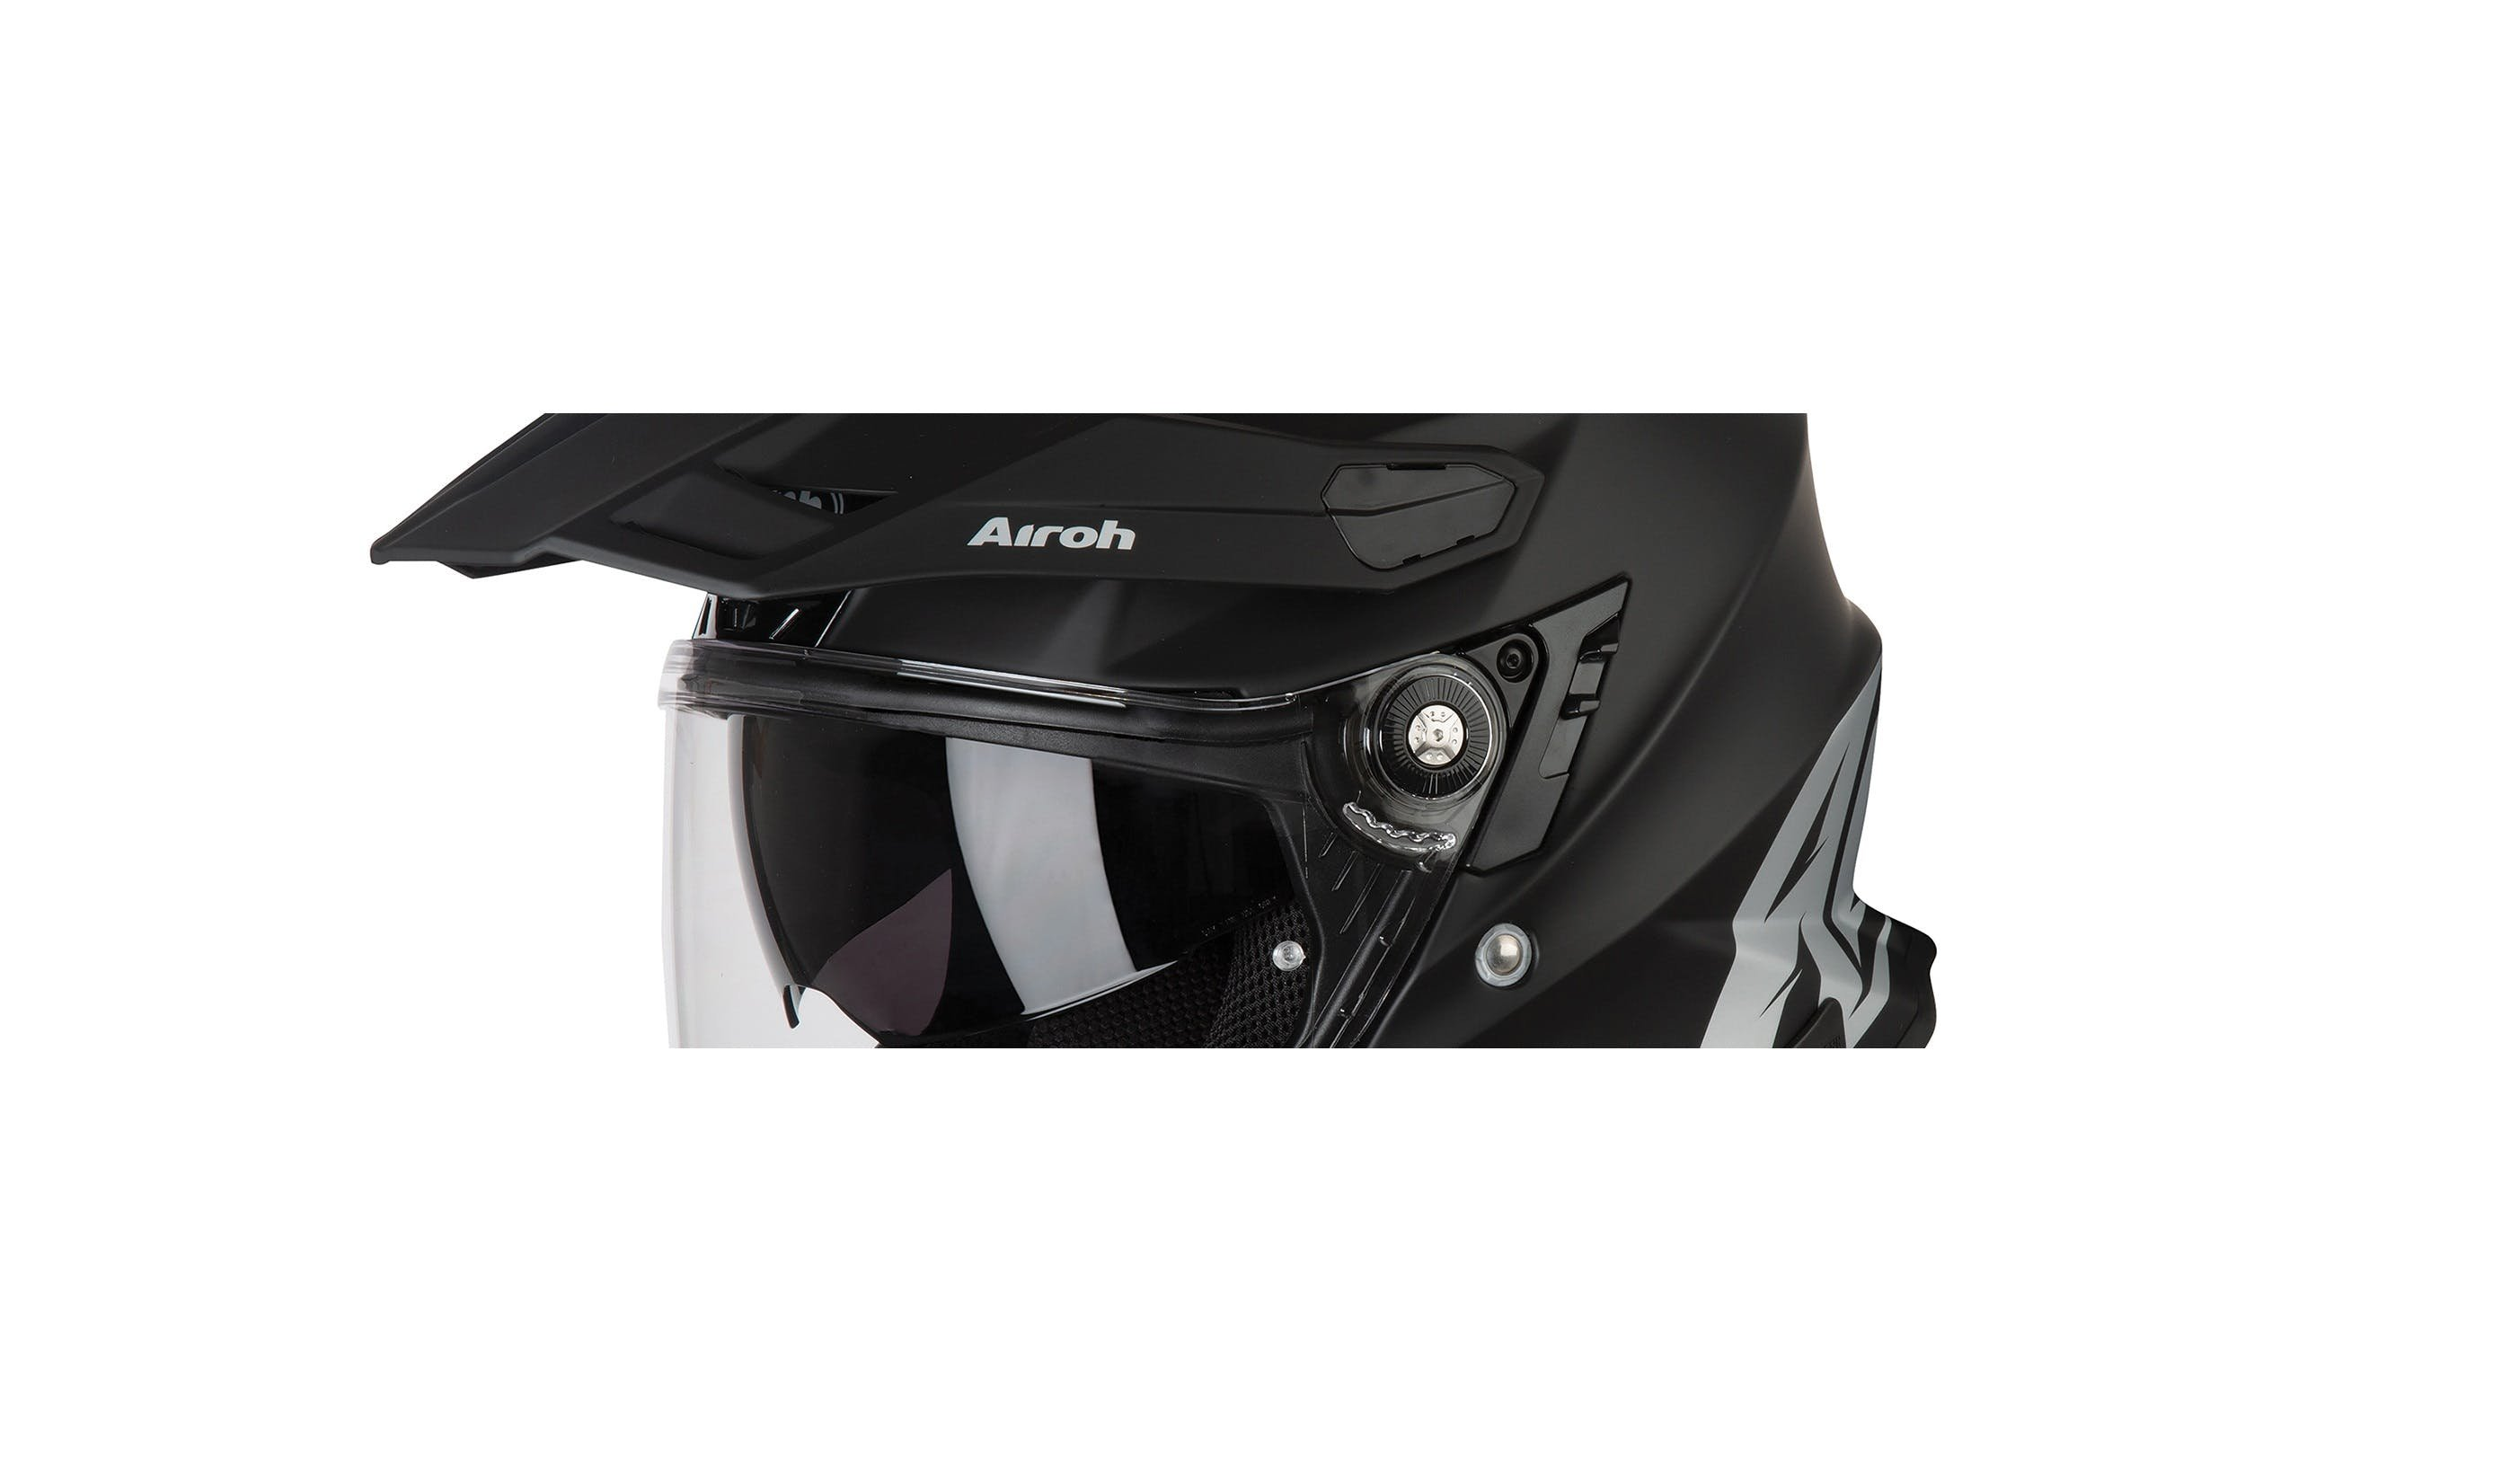 A close up of the mounts and peak on the Airoh Commander